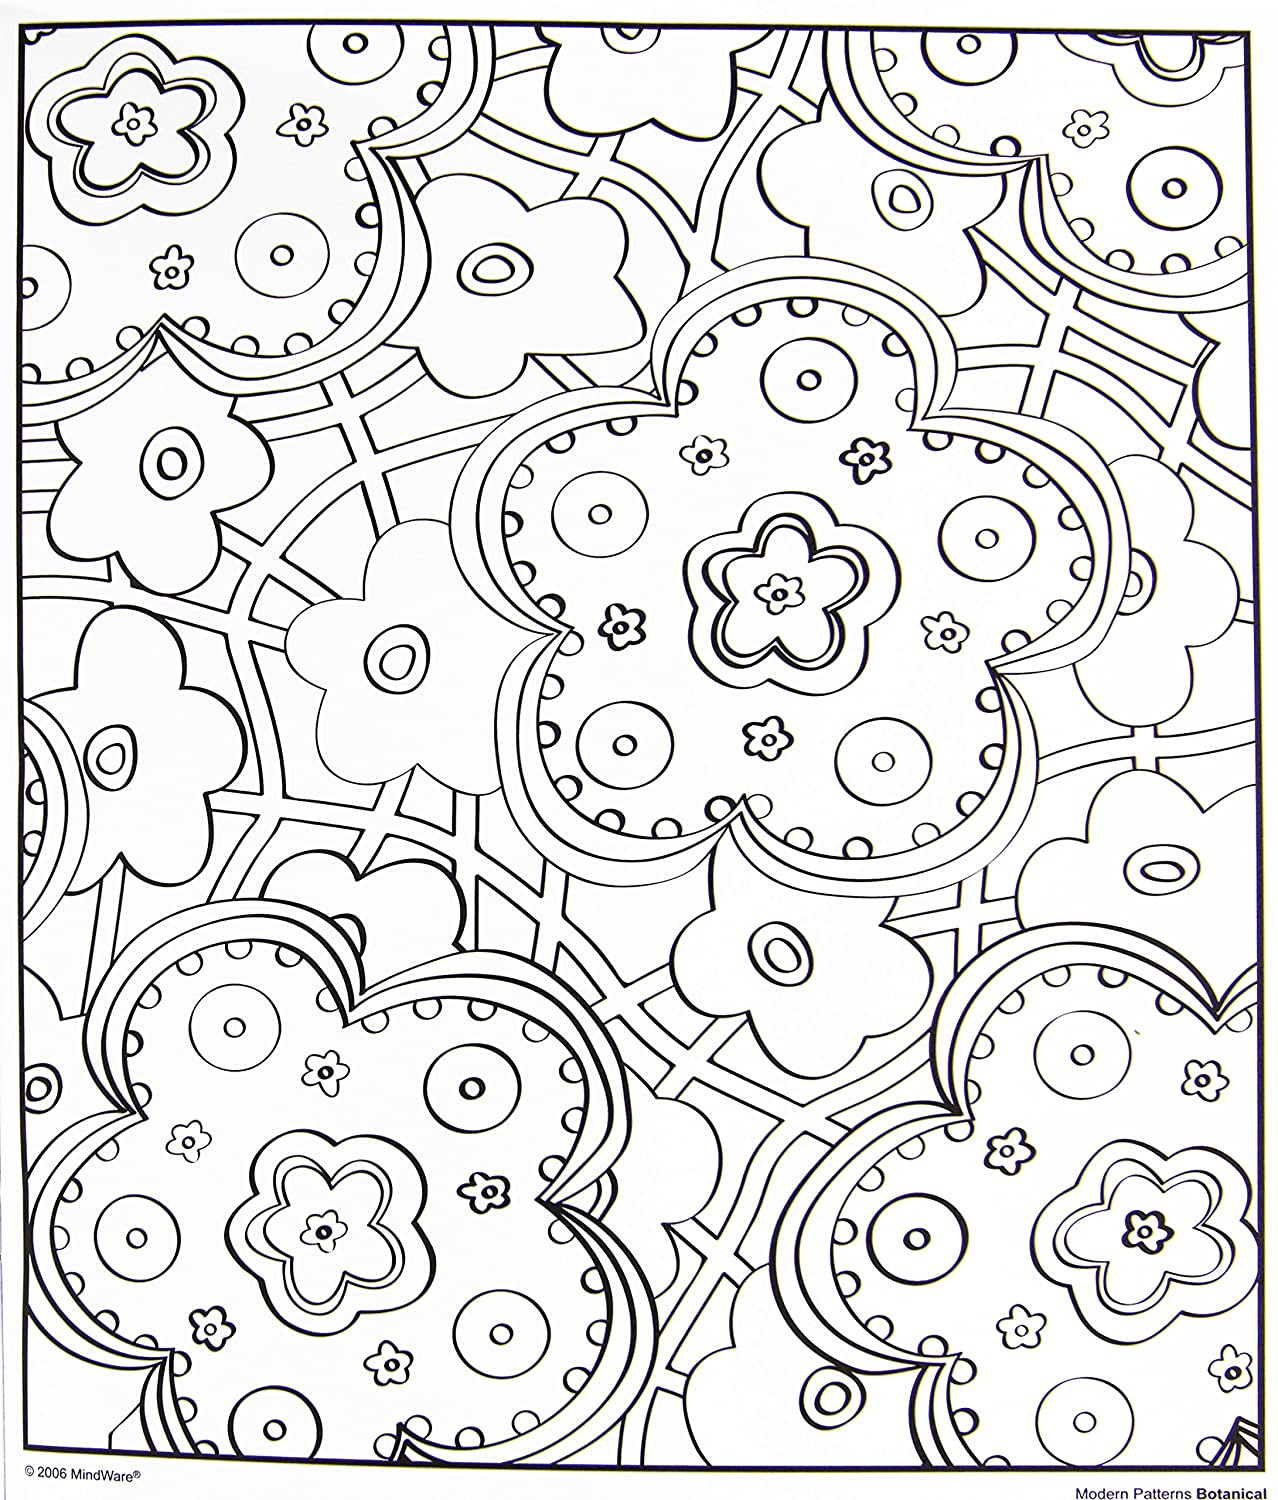 amazoncom mindware modern patterns botanical coloring book 24 unique puzzles teaches creativity and fosters imagination mindware toys games